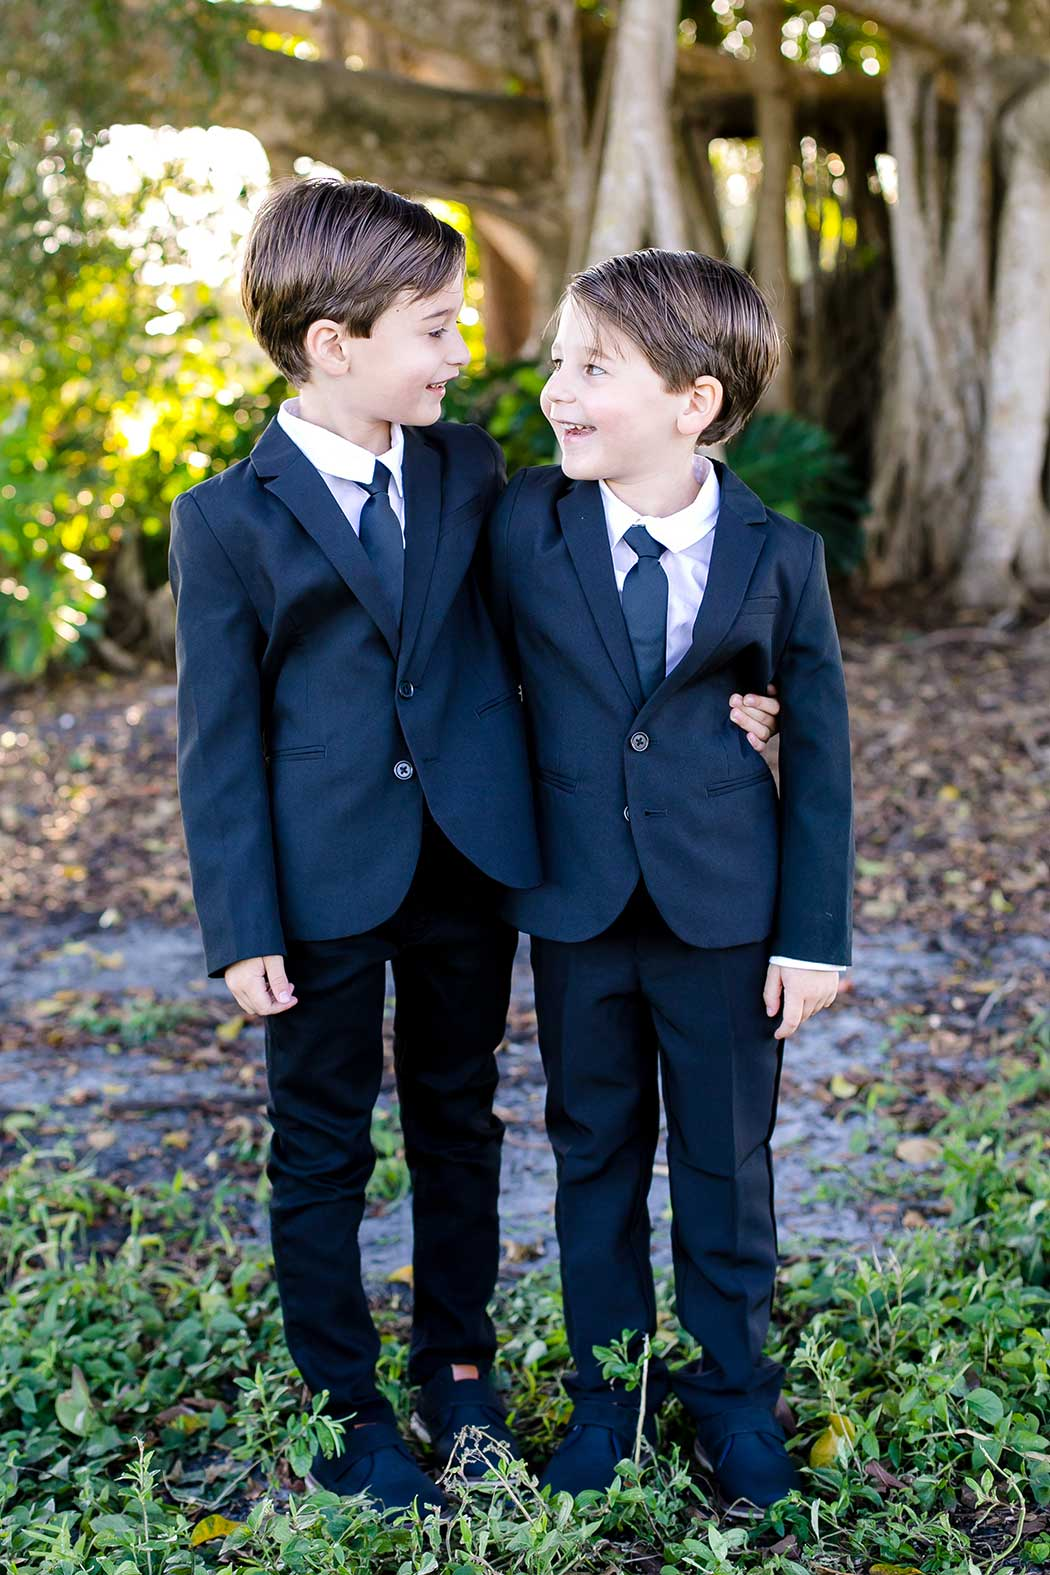 twin boys pose for photo | twin 5-year old boys photographs | family photo session fort lauderdale | family photographer robbins preserve fort lauderdale | elegant family photoshoot